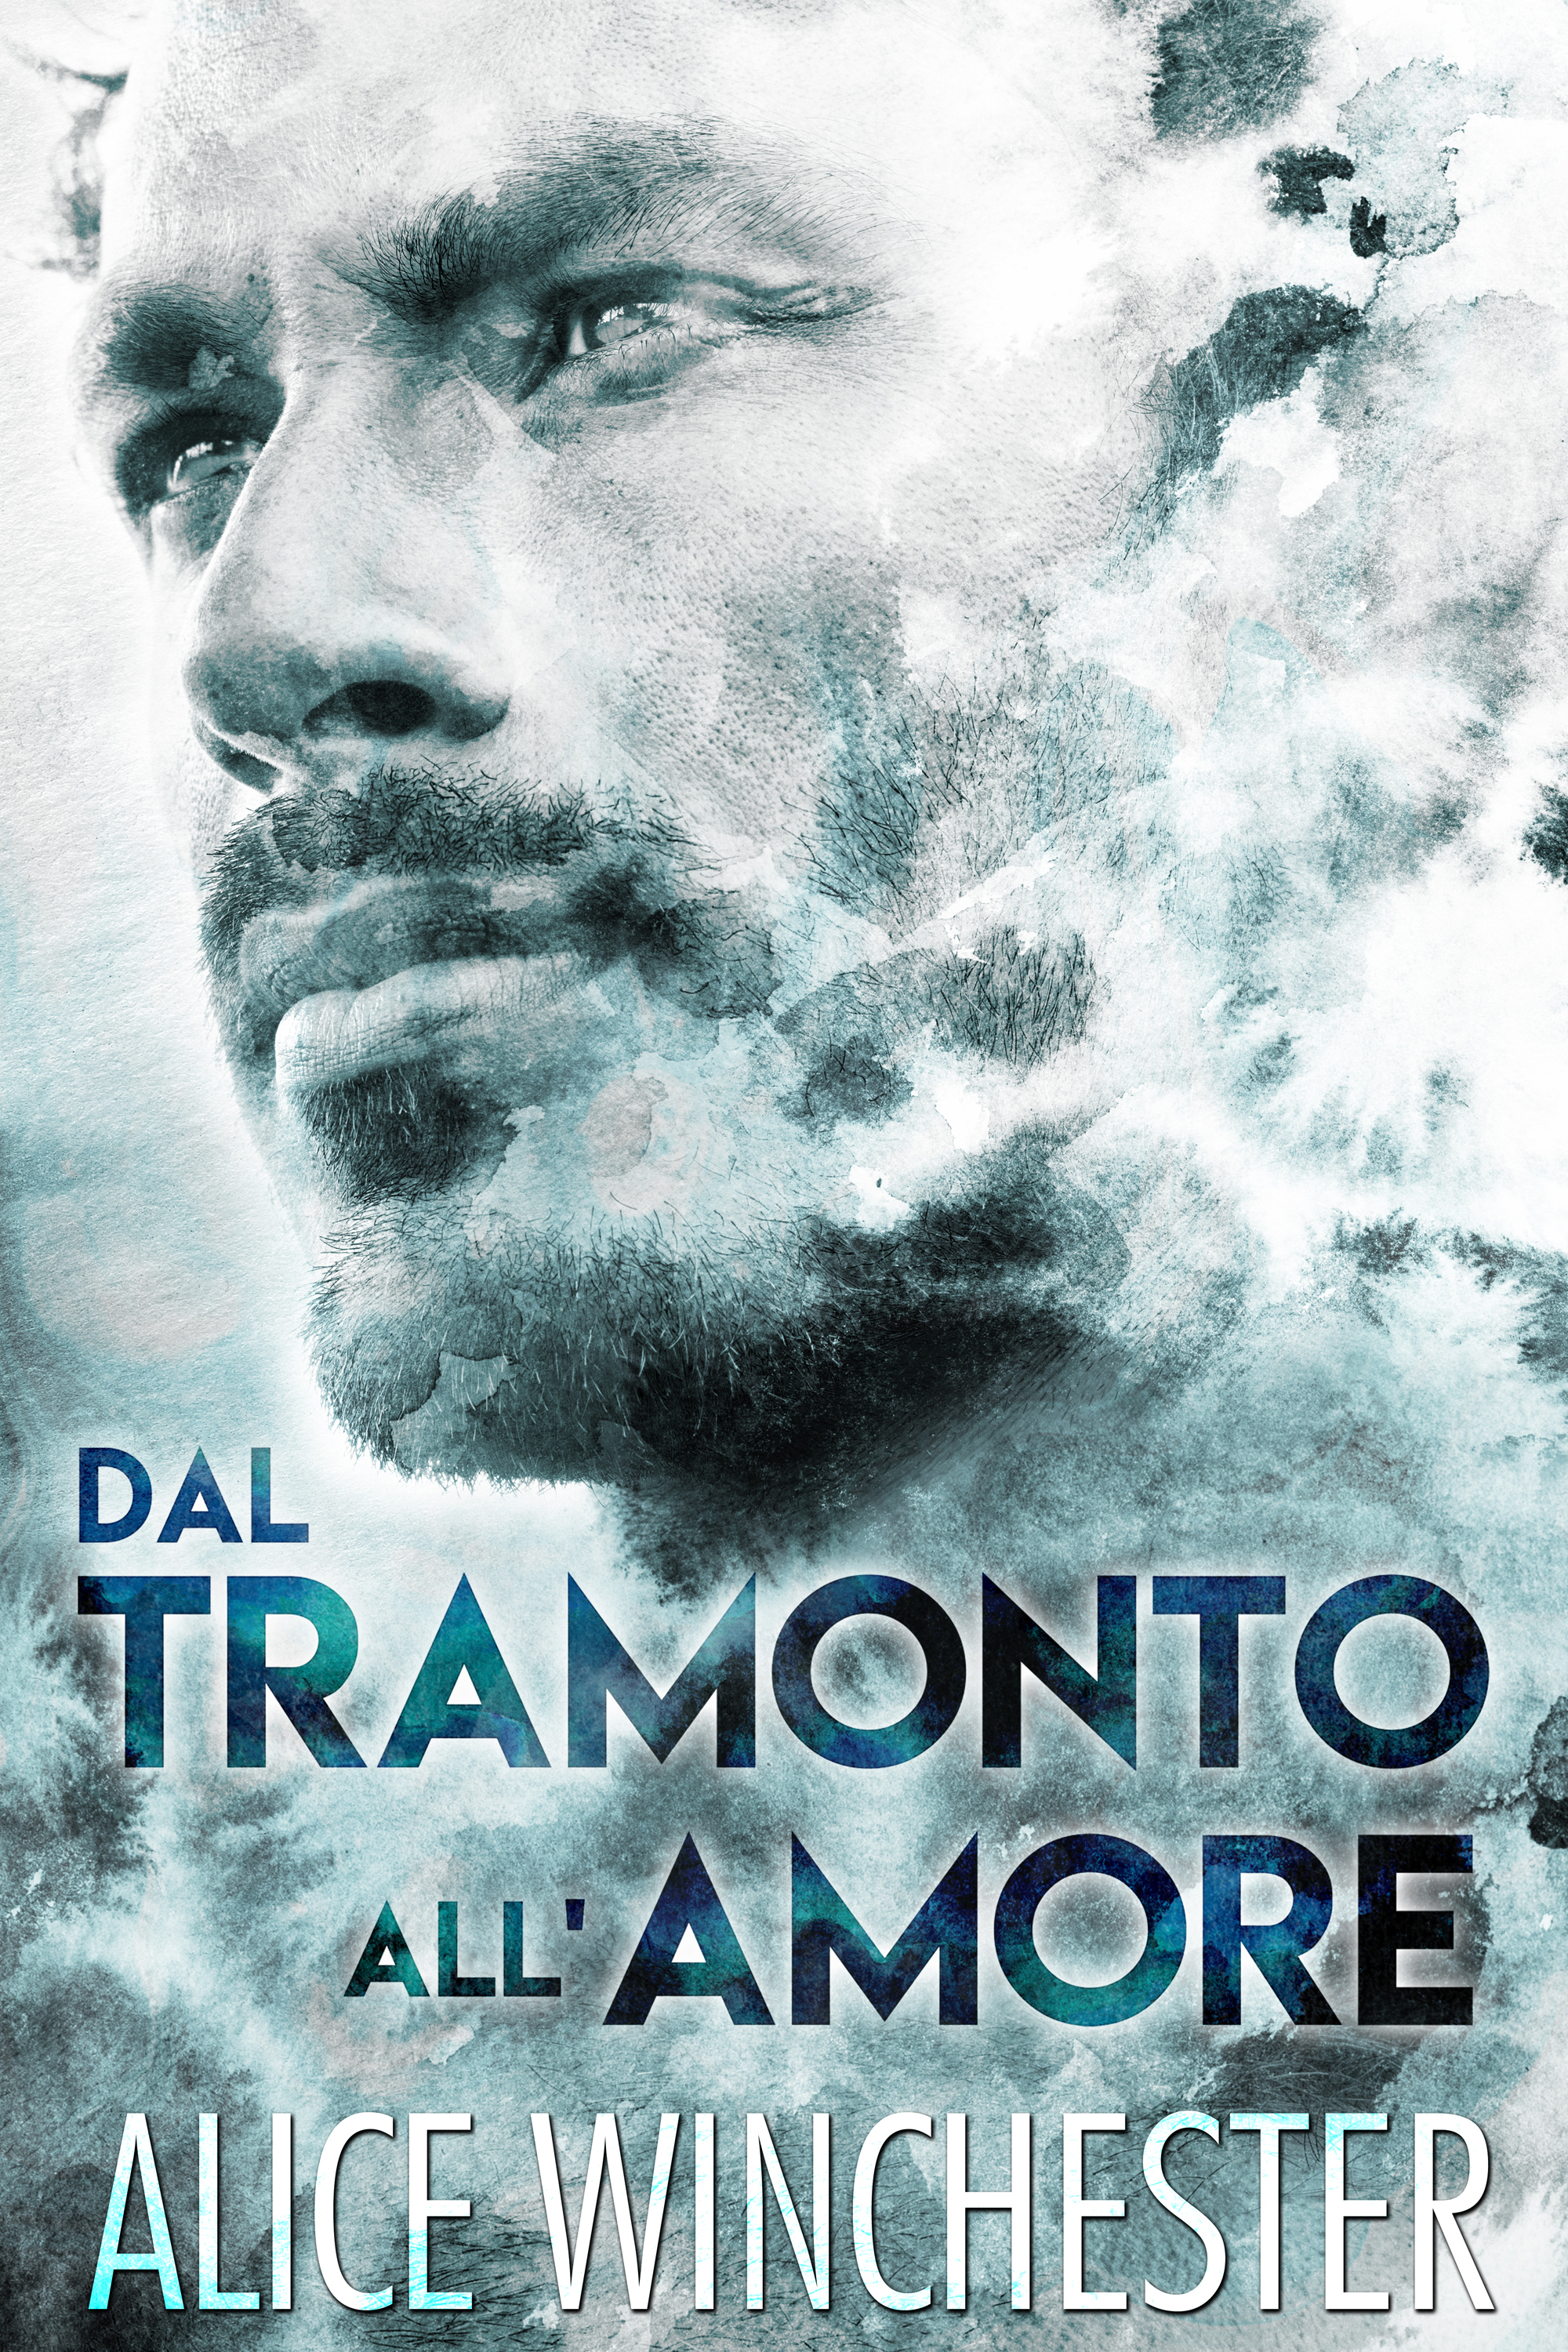 Cover Reveal: Dal tramonto all'amore